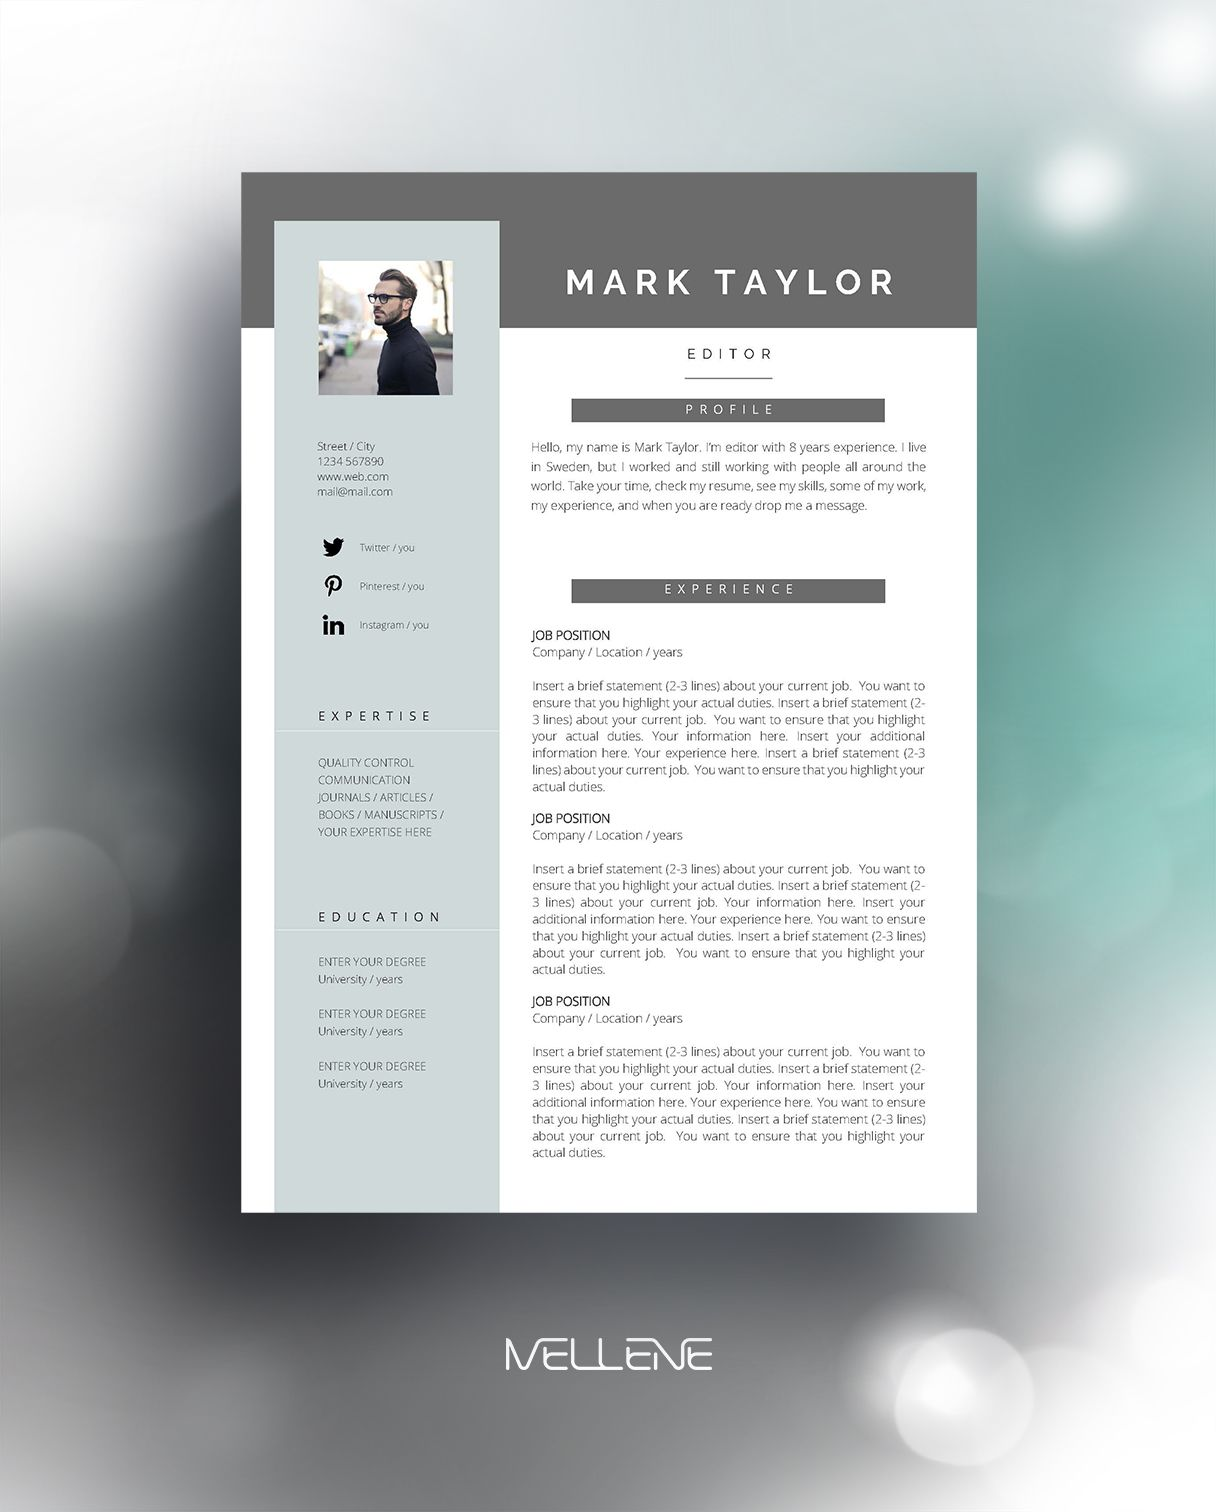 CV Resume Template For MS Word 2 Pages Cover Letter Free Icons Usage Manual Absolutely Adjustable Layout Change Colors Fonts Insert Your